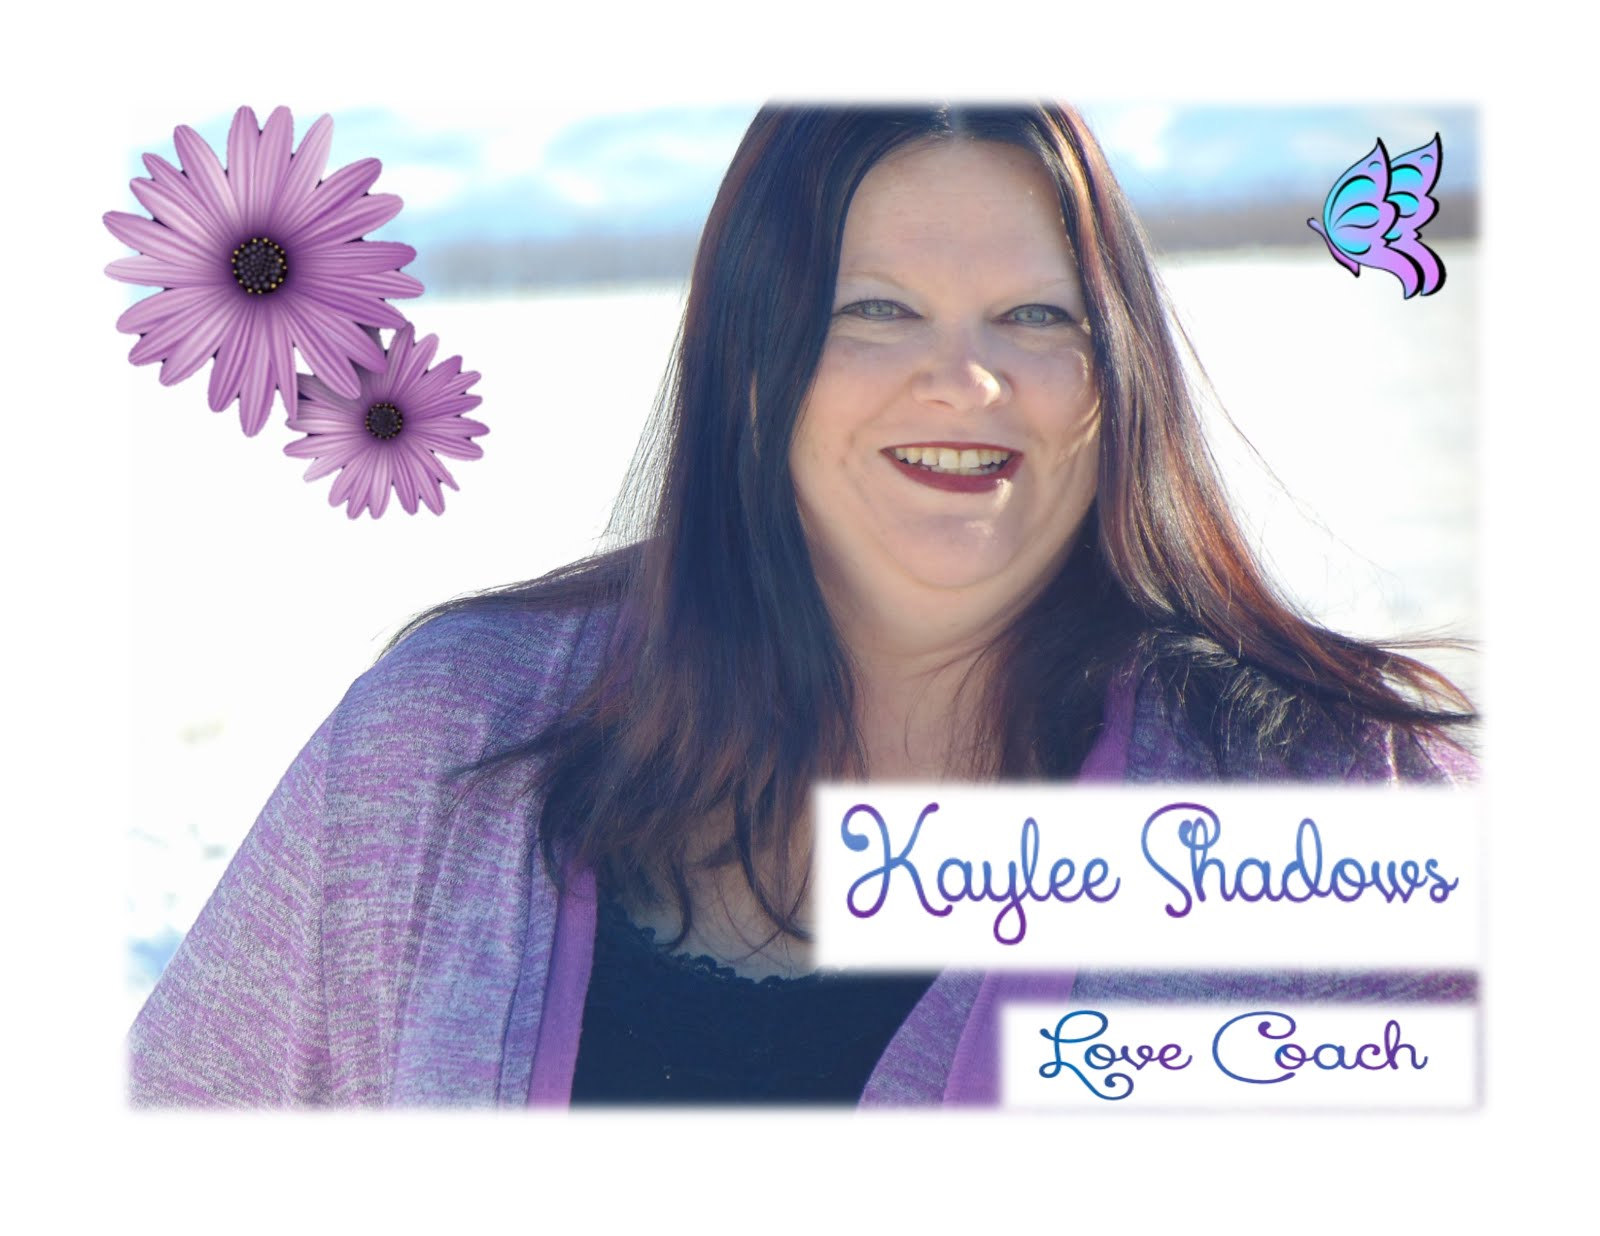 Author Kaylee Shadows